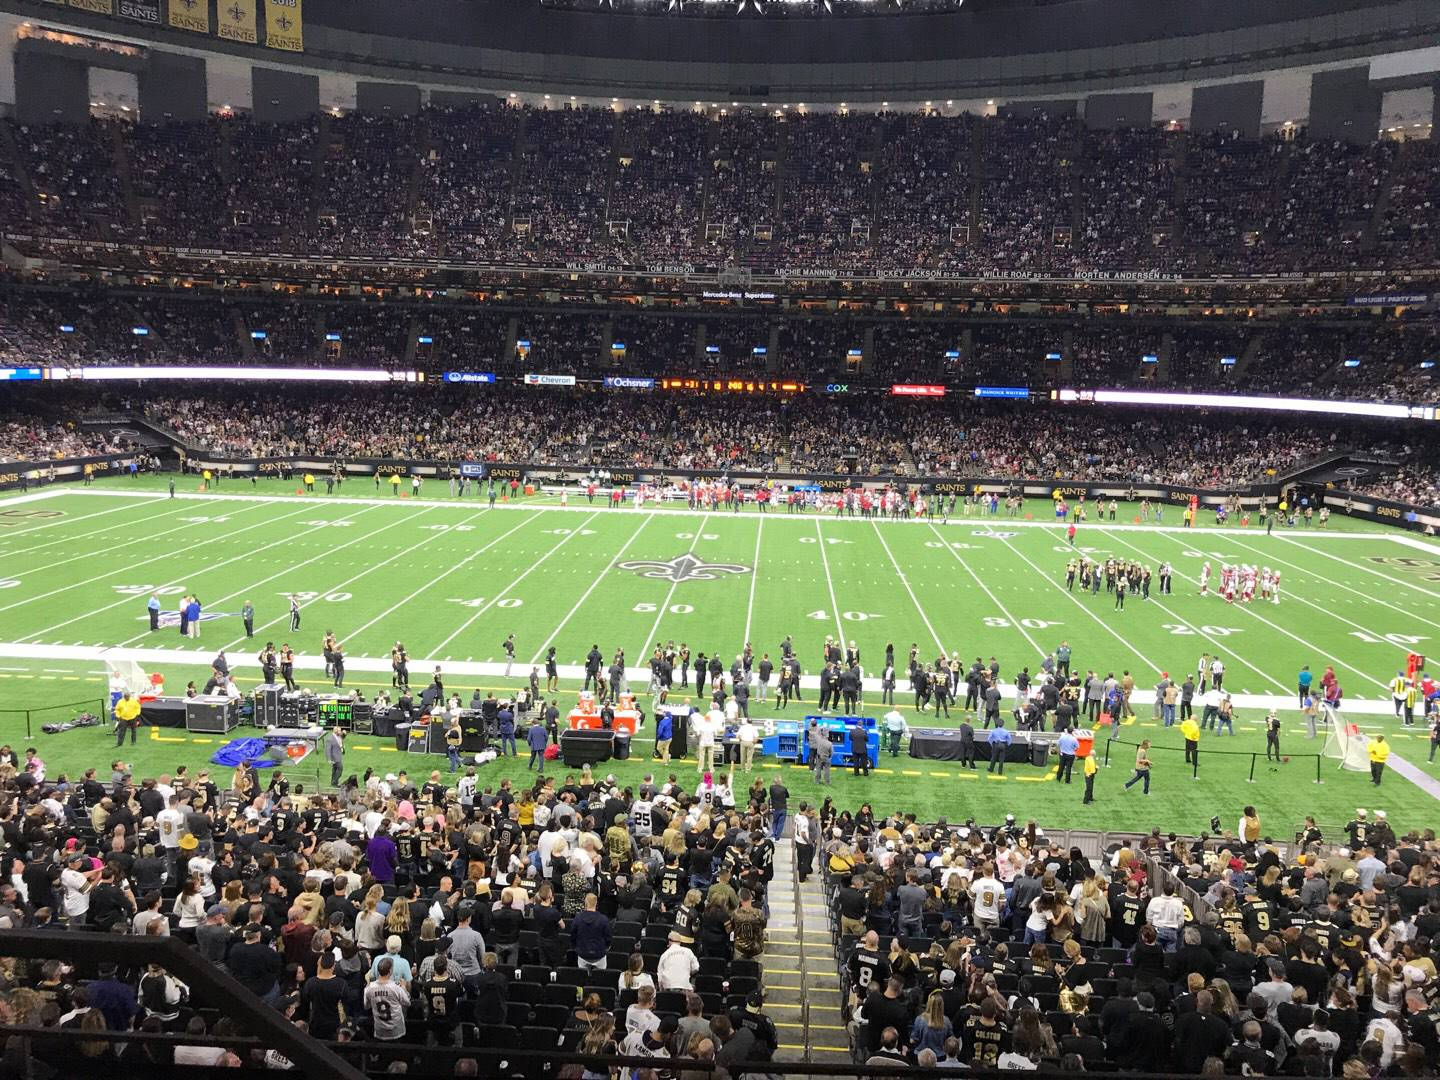 Mercedes-Benz Superdome Section 335 Row 9 Seat 19